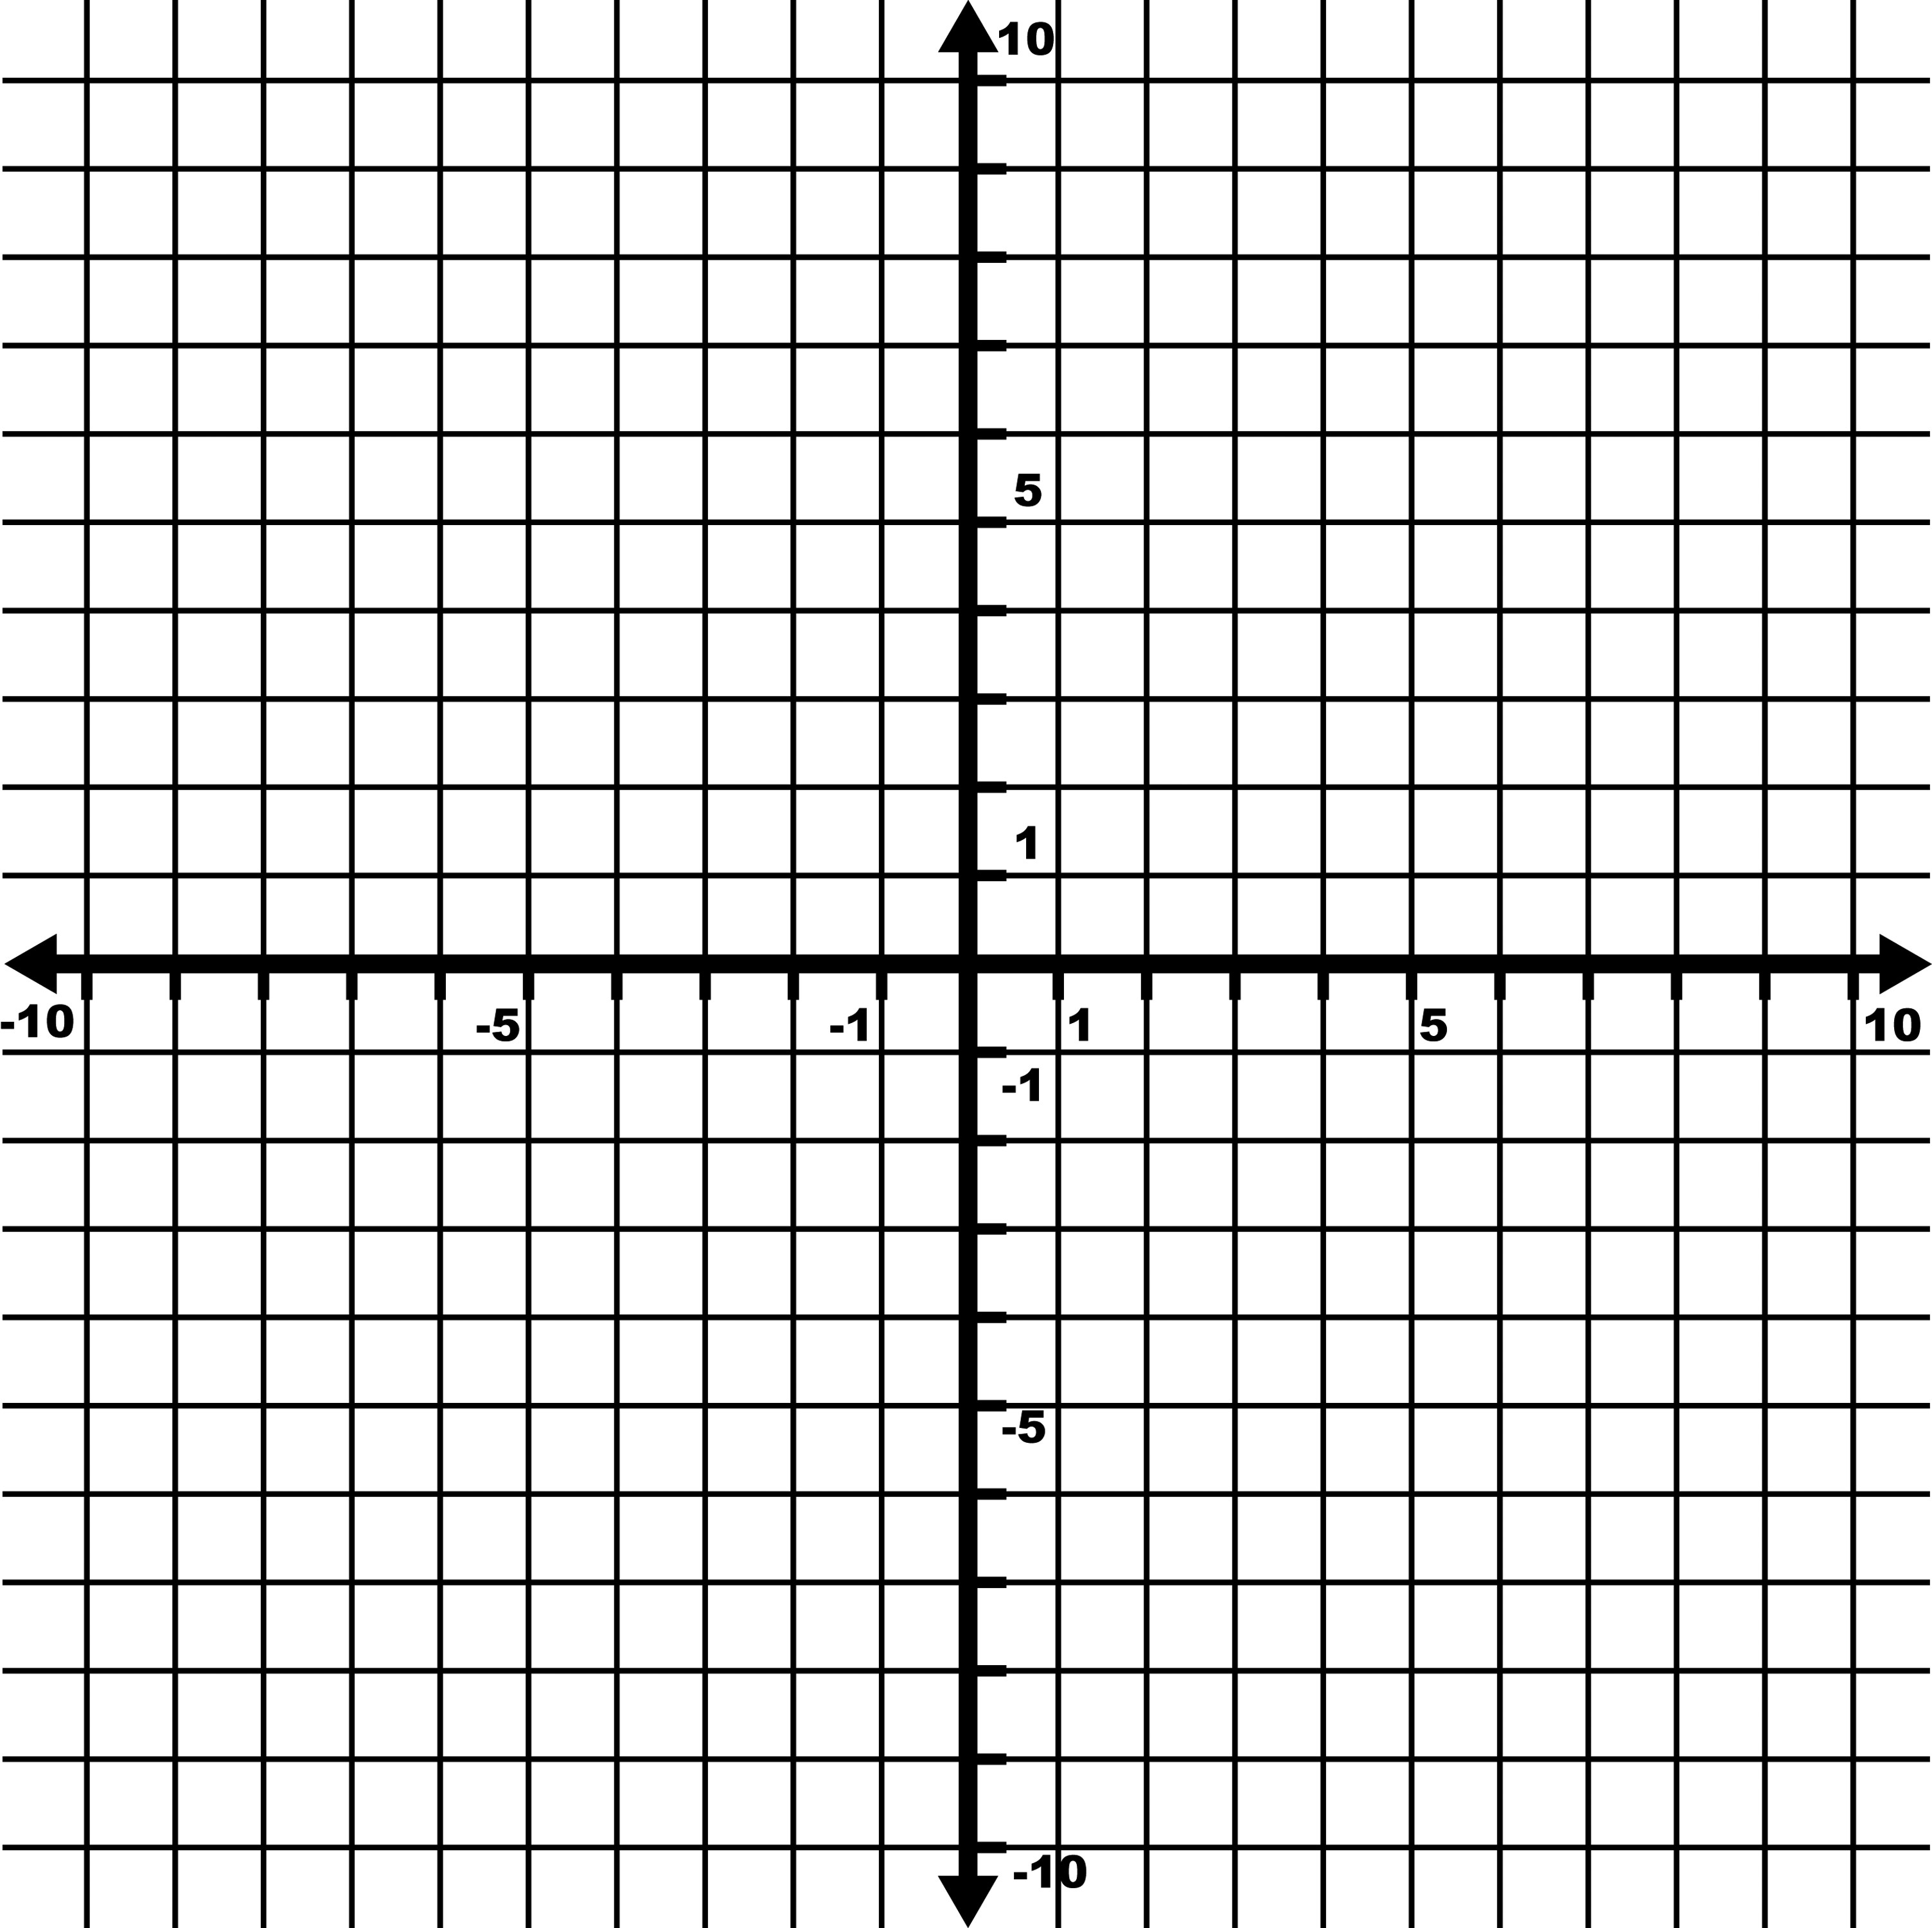 -10 To 10 Coordinate Grid With Some Increments Labeled And